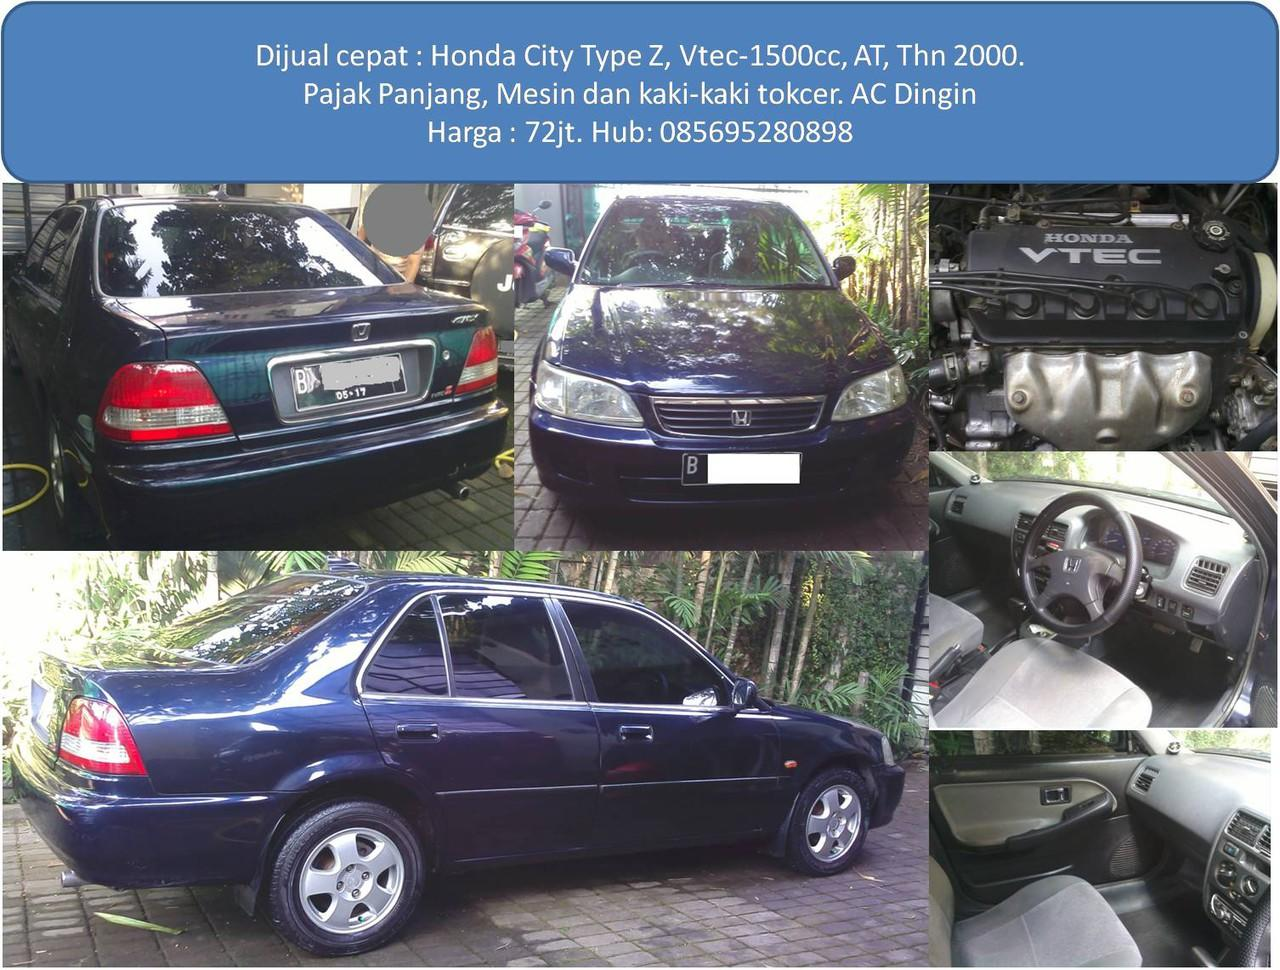 Jual Cepat : Honda City Type Z, Vtec, At, Biru Metalik